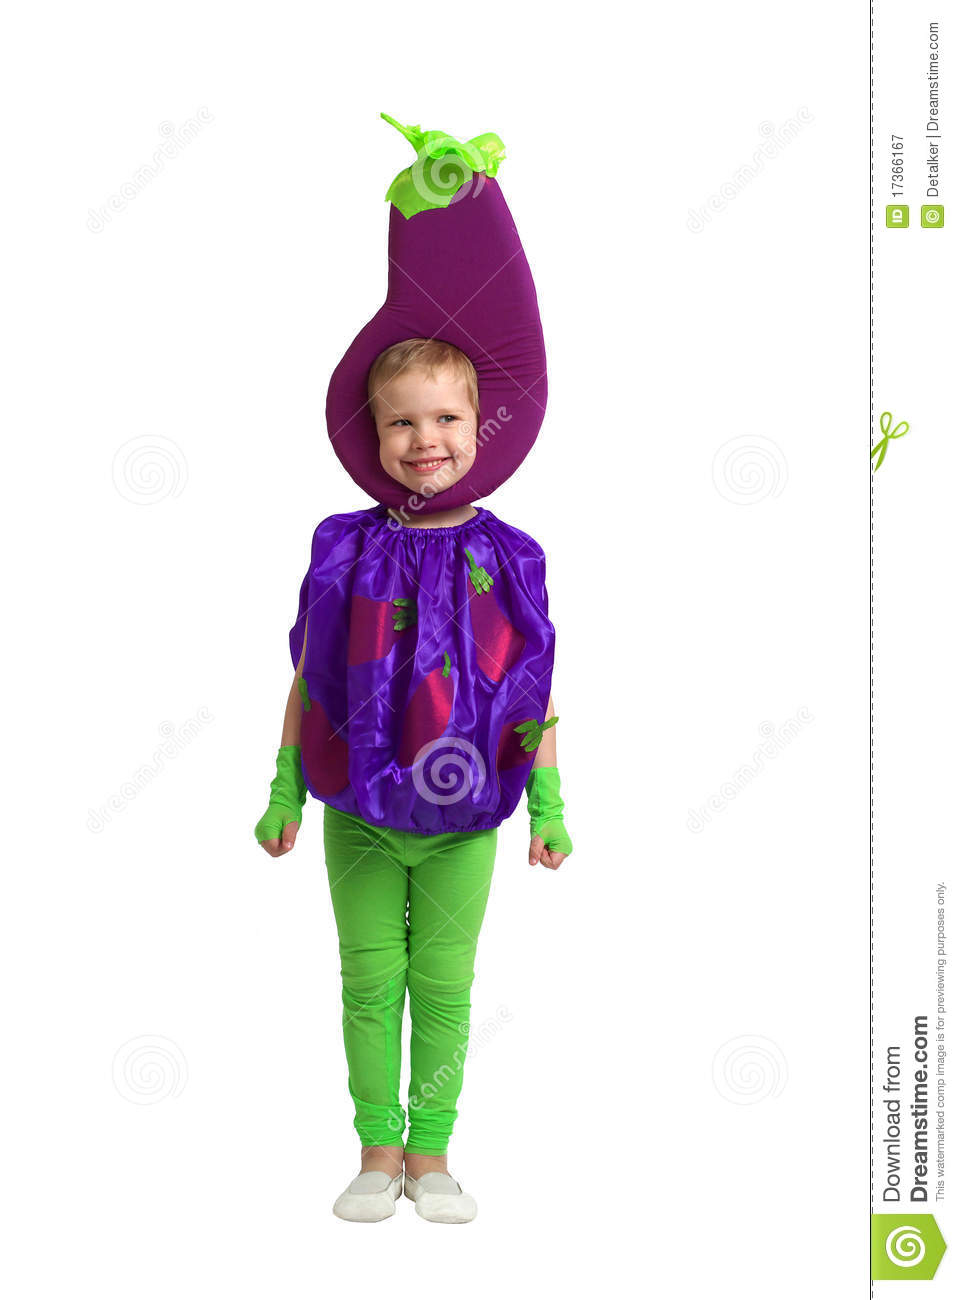 A Child In Vegetable Costume Stock Image Image Of Dress